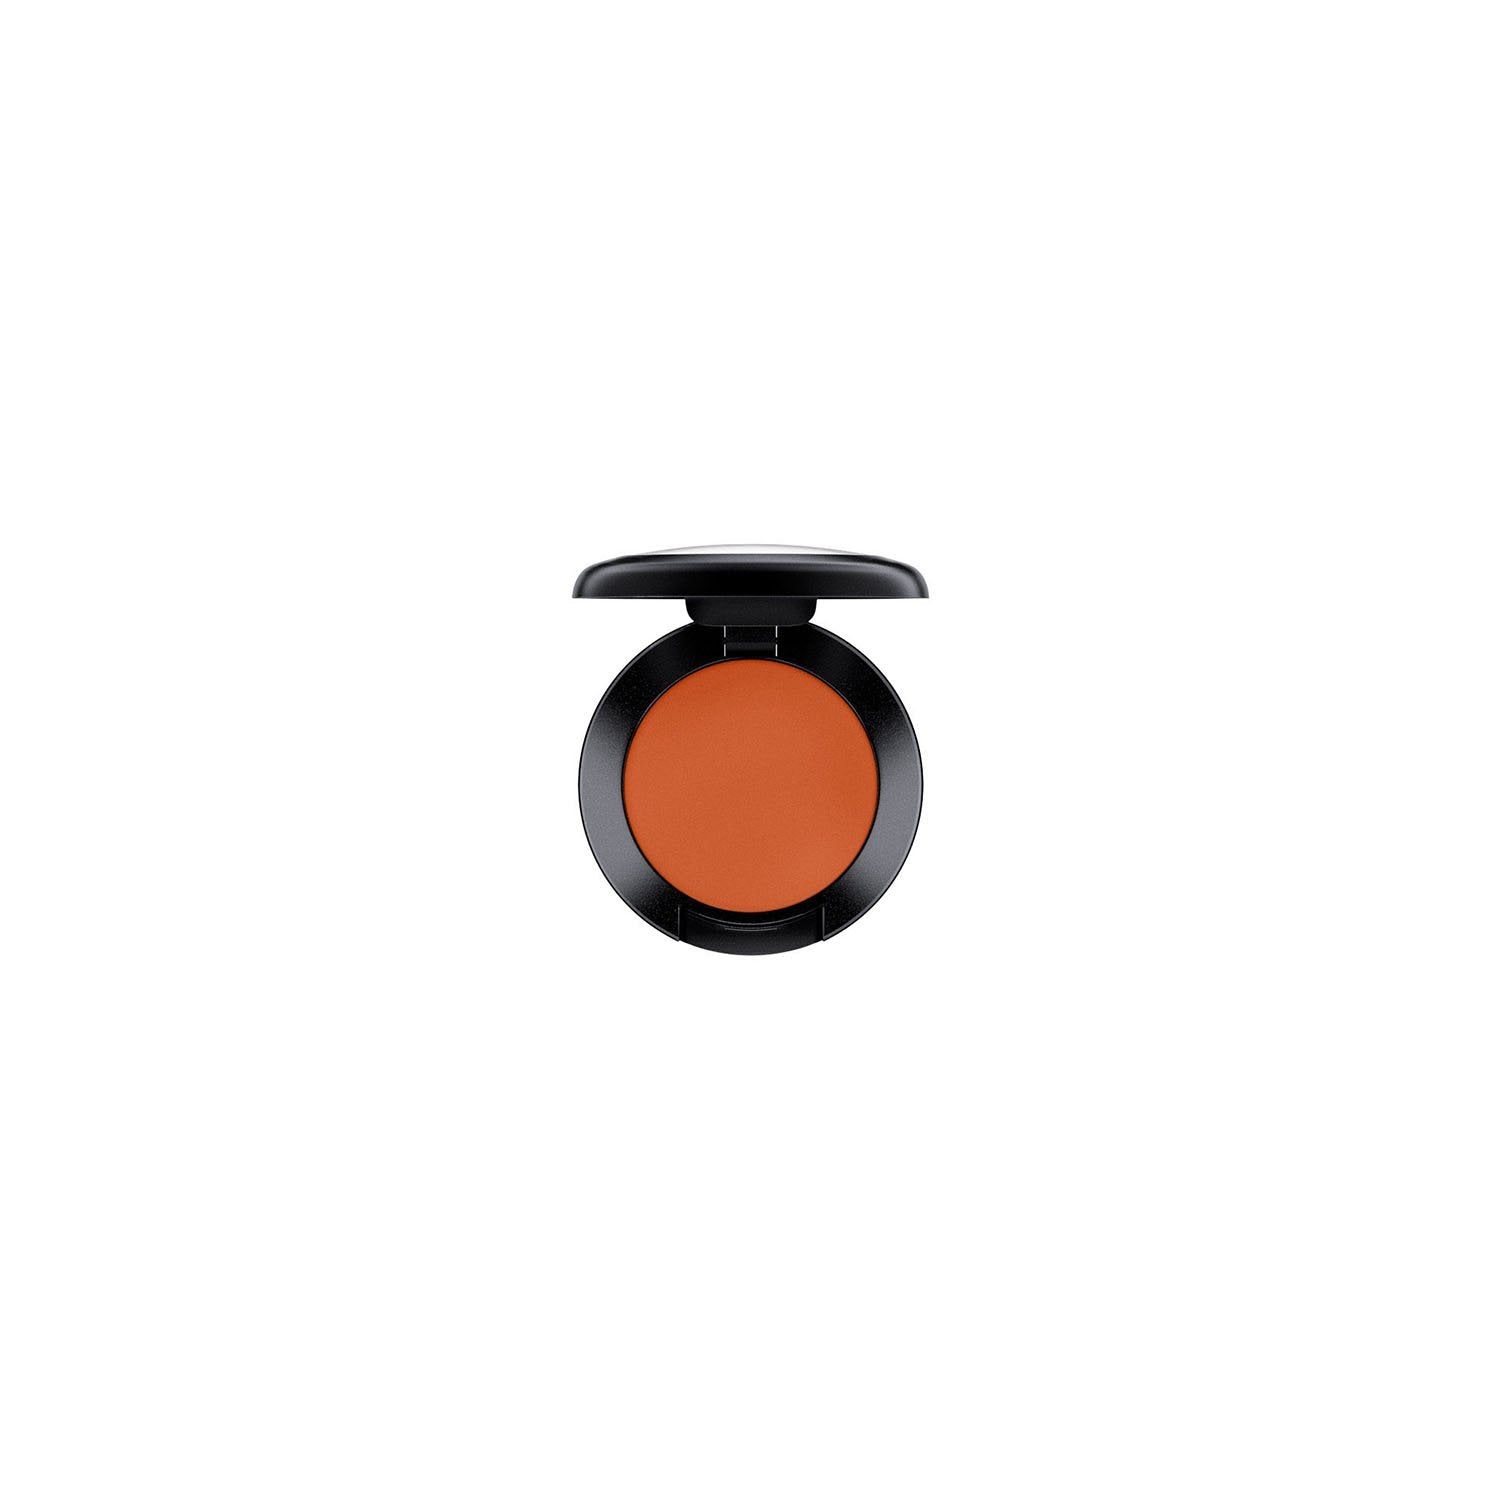 MAC STUDIO FINISH CONCEALER SPF35 NW55